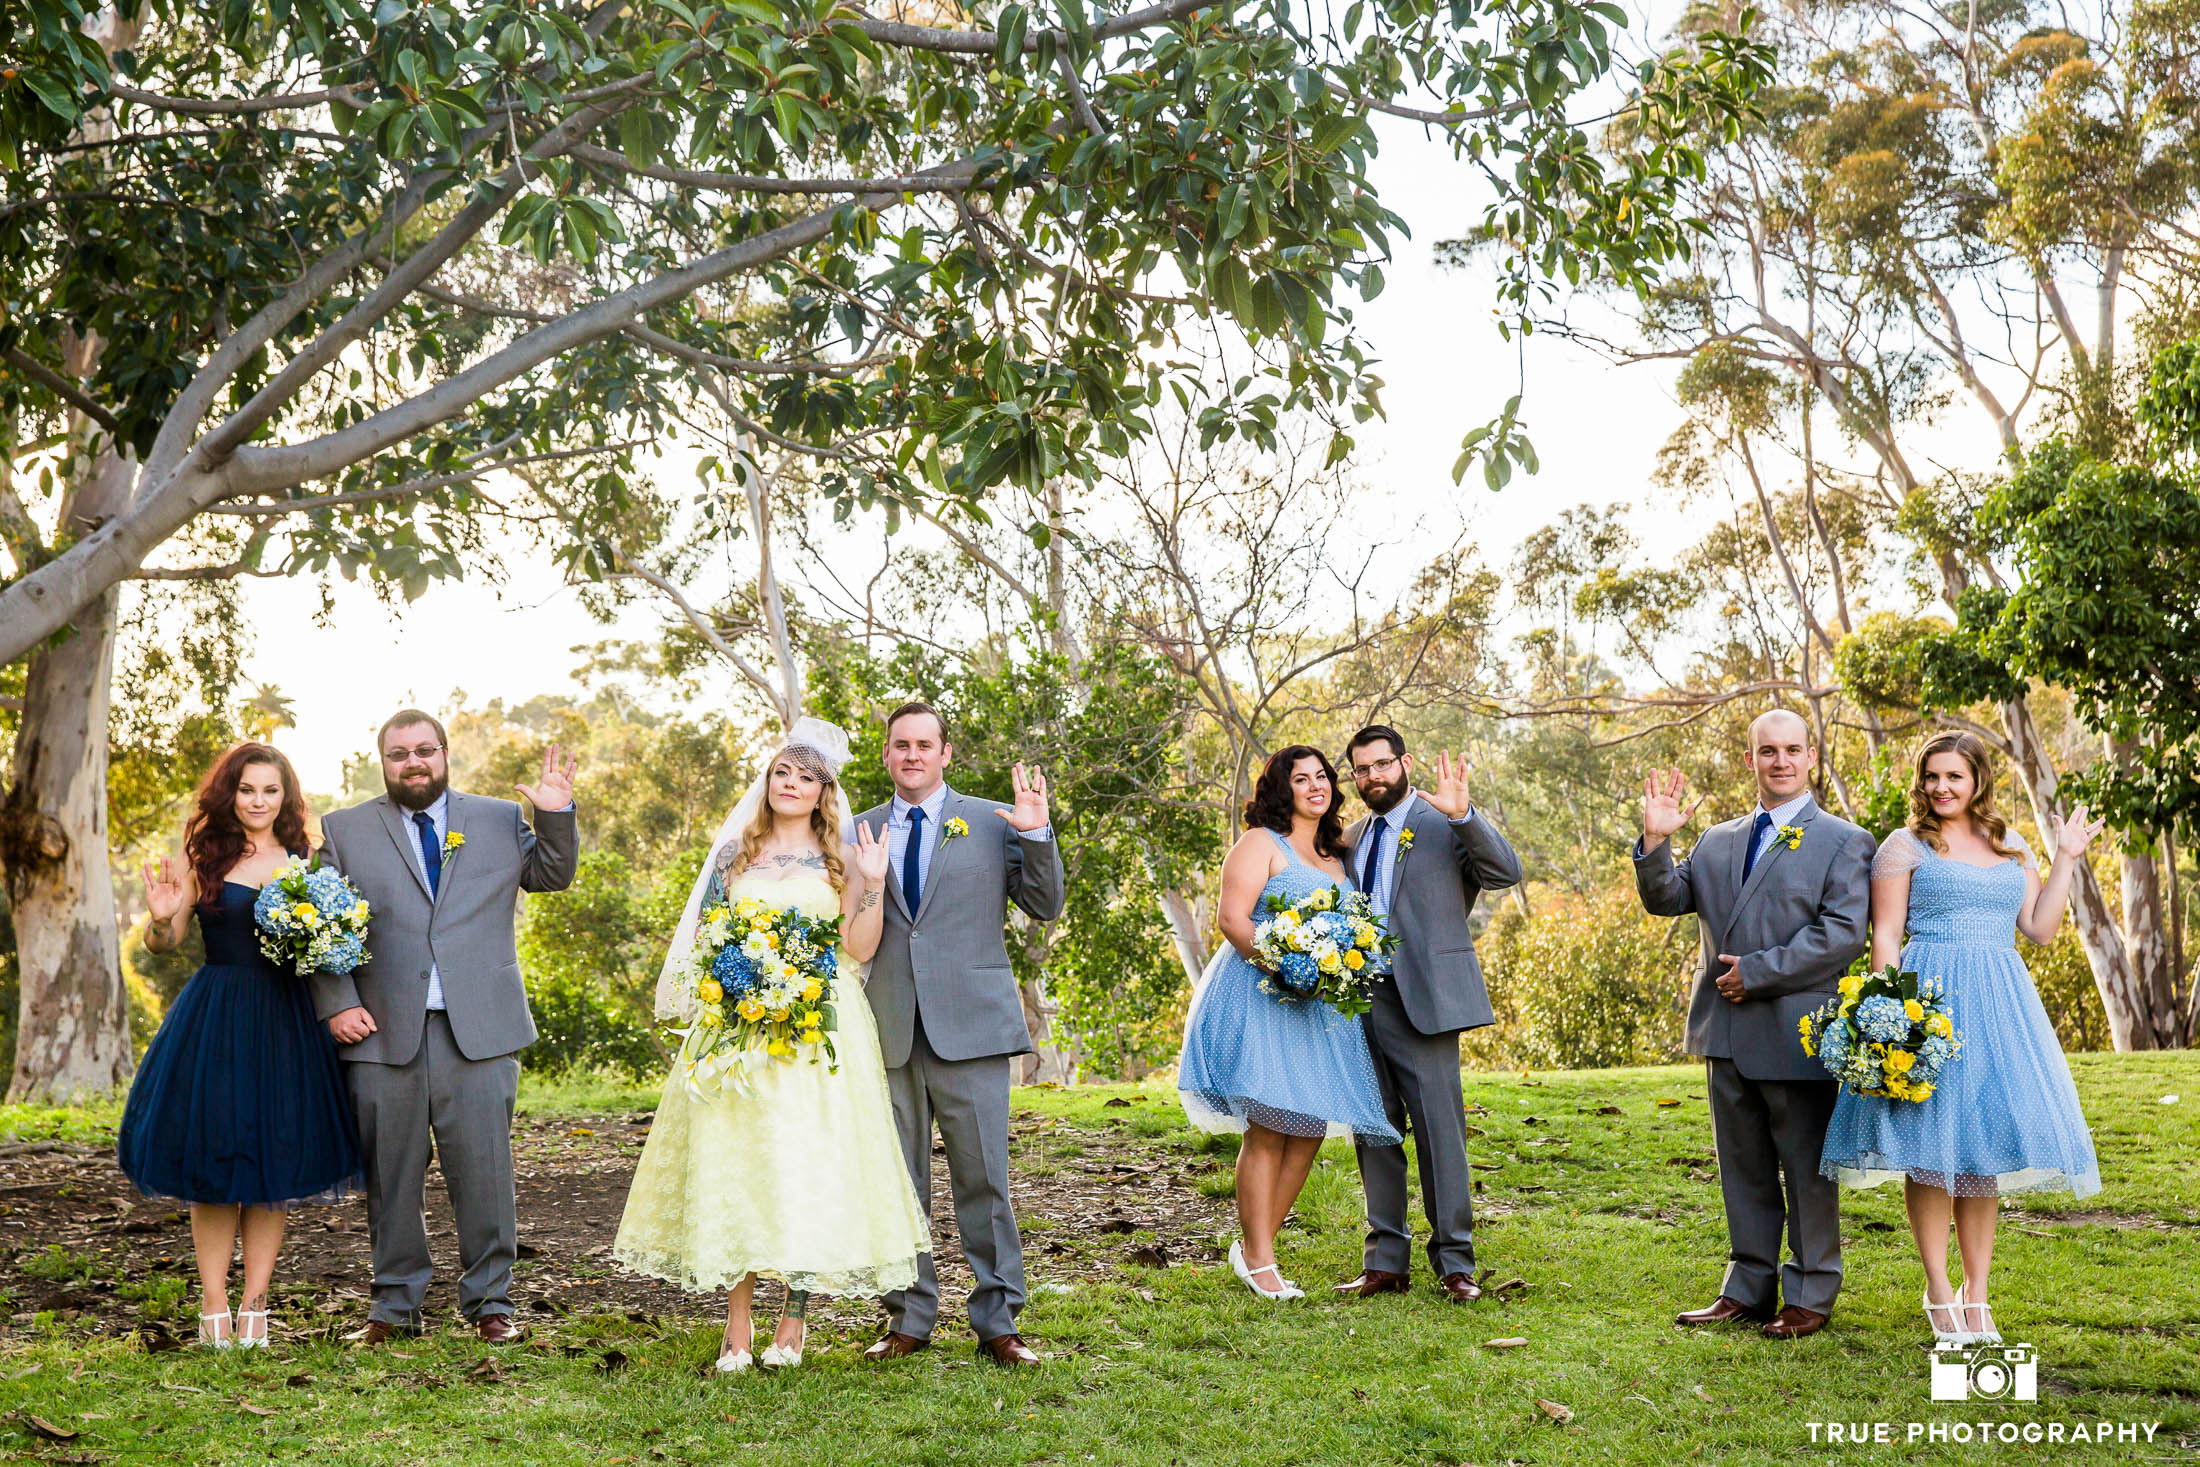 Bride and Groom pose with Bridal Party showing Star Trek Vulcan Salute